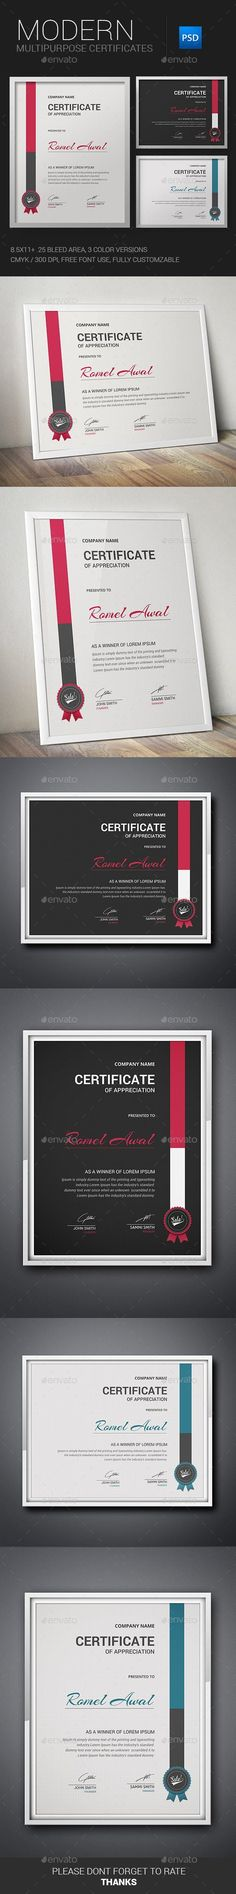 Certificate inches) + Bleed Area 2 Color Version 4 PSD file Potrait & Landscape Mode Print Ready 300 DPI, CMYK Free Fonts Used Easy to modify, change colors, dimensions, all text & icon editable. Certificate Layout, Certificate Of Merit, Certificate Of Appreciation, Award Certificates, Certificate Templates, Stationery Printing, Stationery Templates, Stationery Design, Print Templates